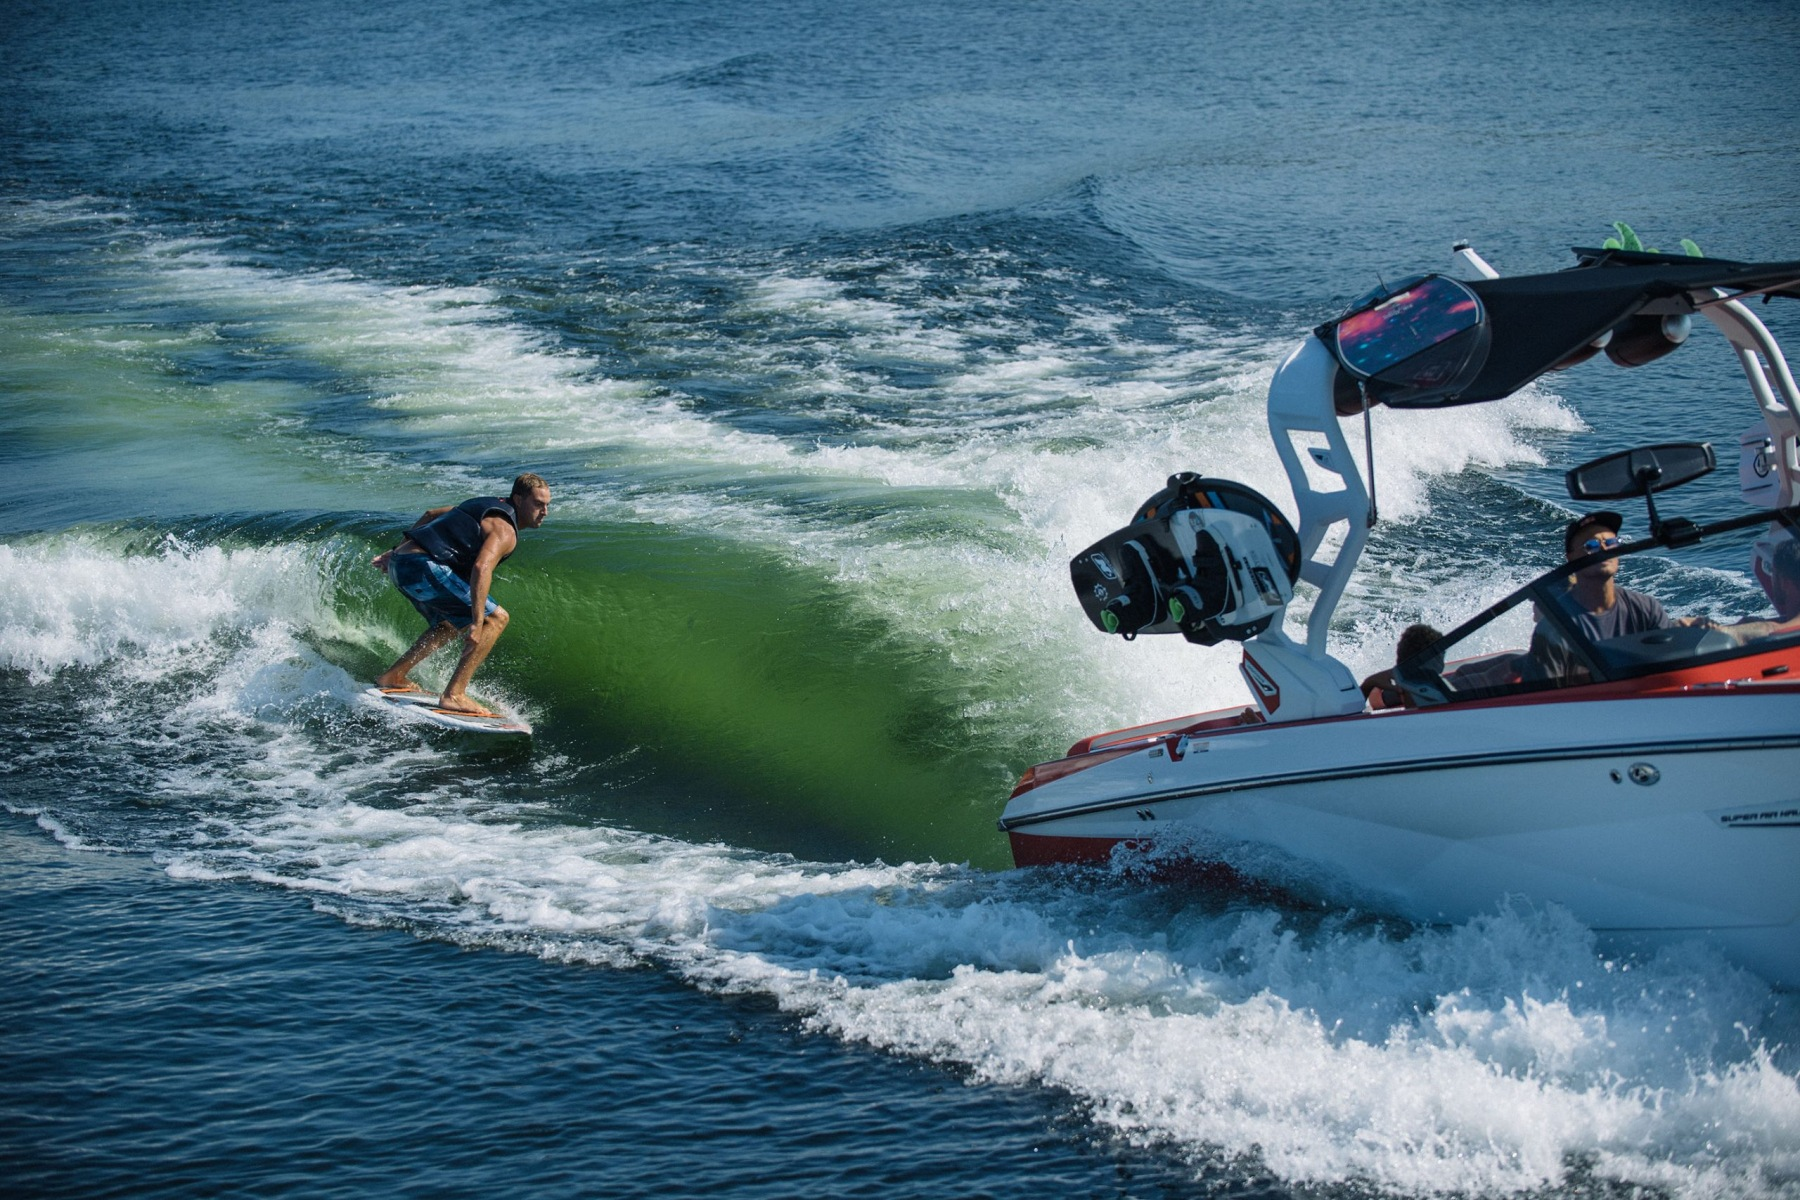 Wake Surfing Behind the 2021 Nautique G23 Wake Boat